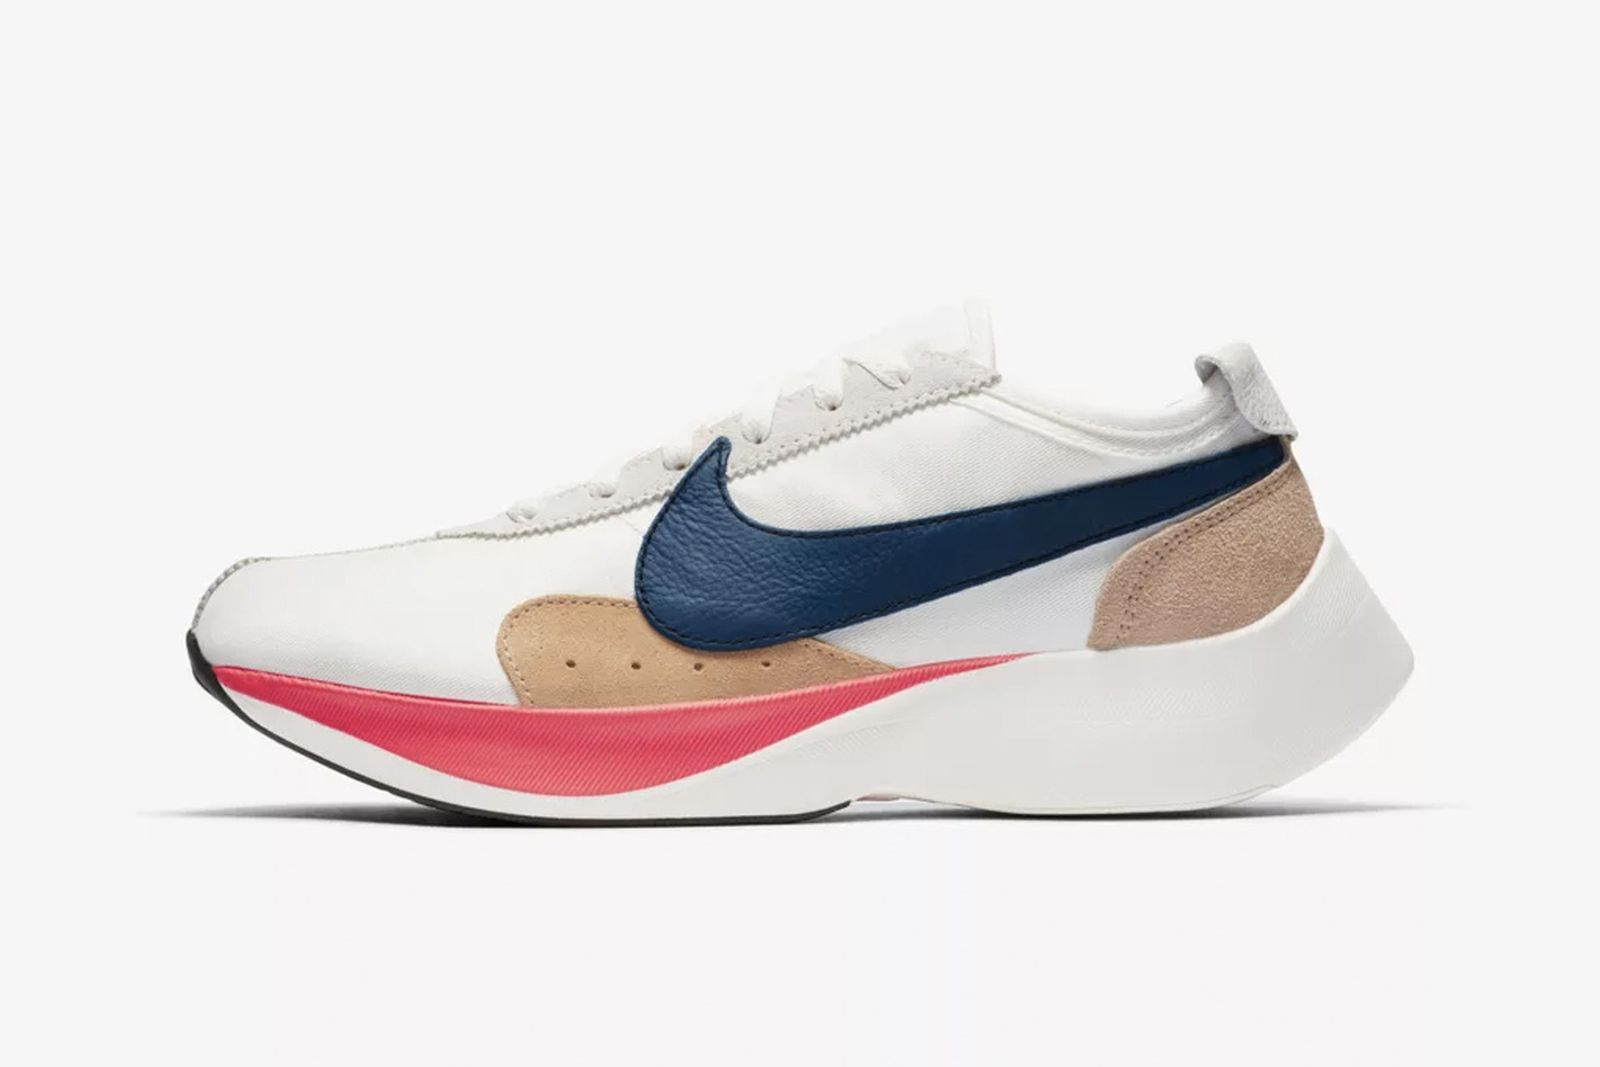 nike moon racer black racer blue release date price product